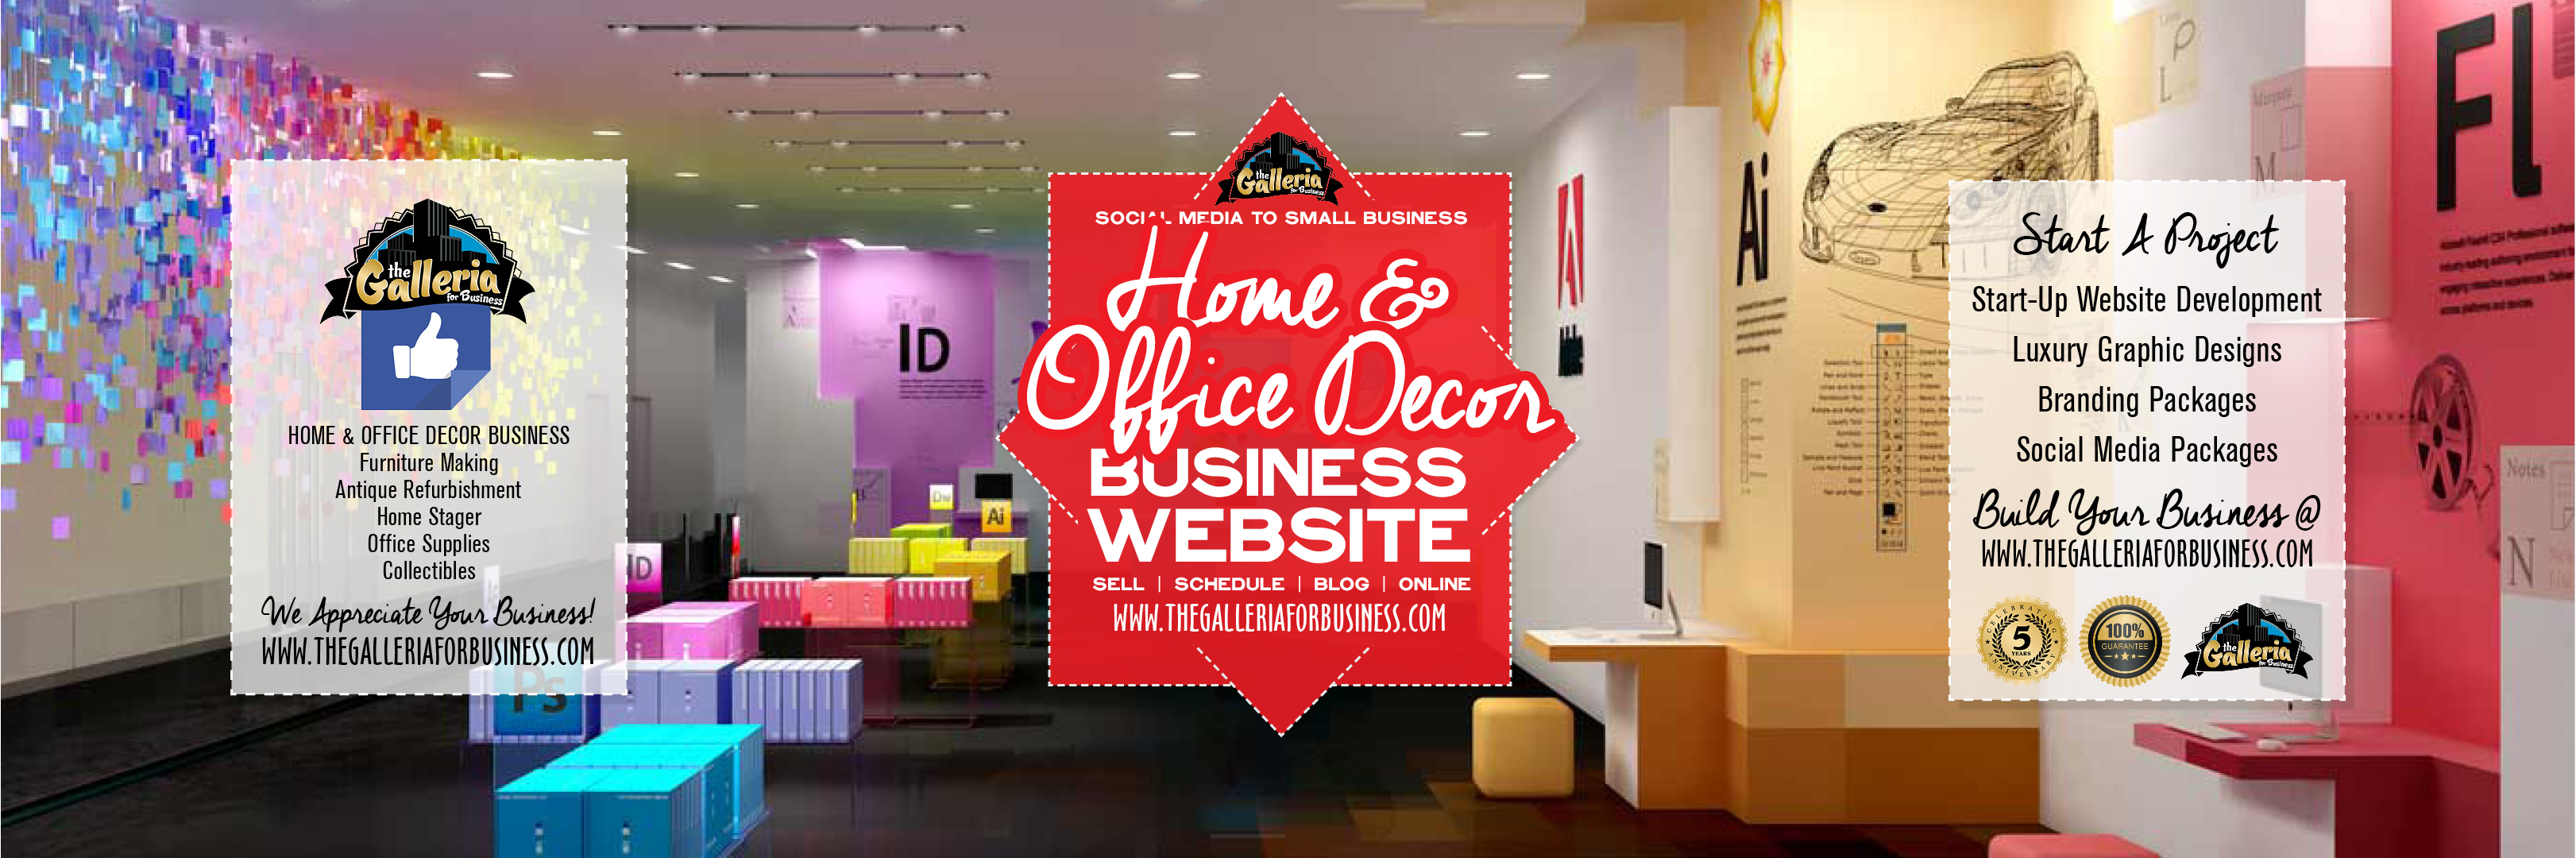 Home & Office Decor Business